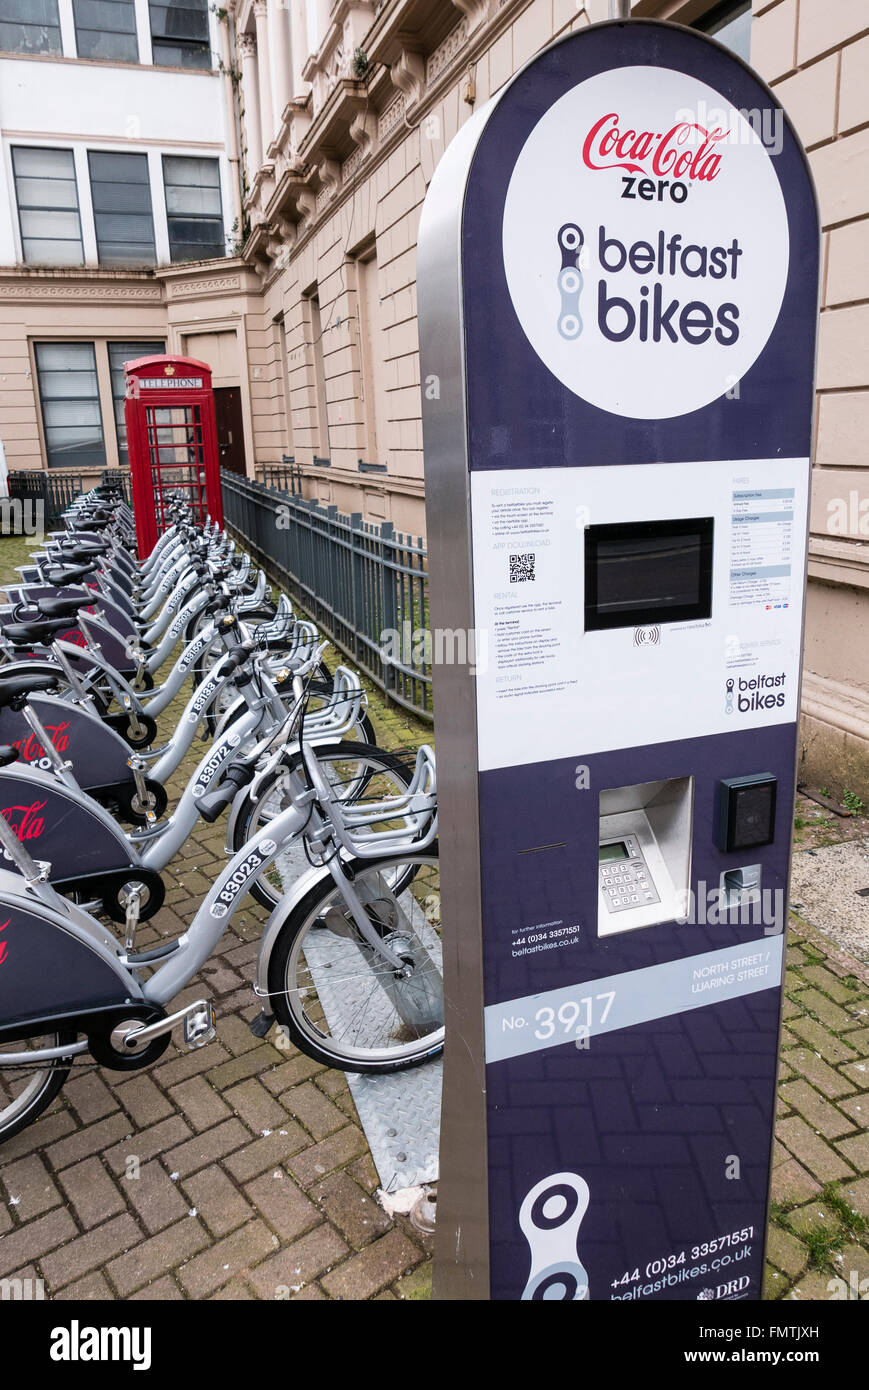 Belfast Bikes - bicycles available for short term rental by residents and visitors. - Stock Image